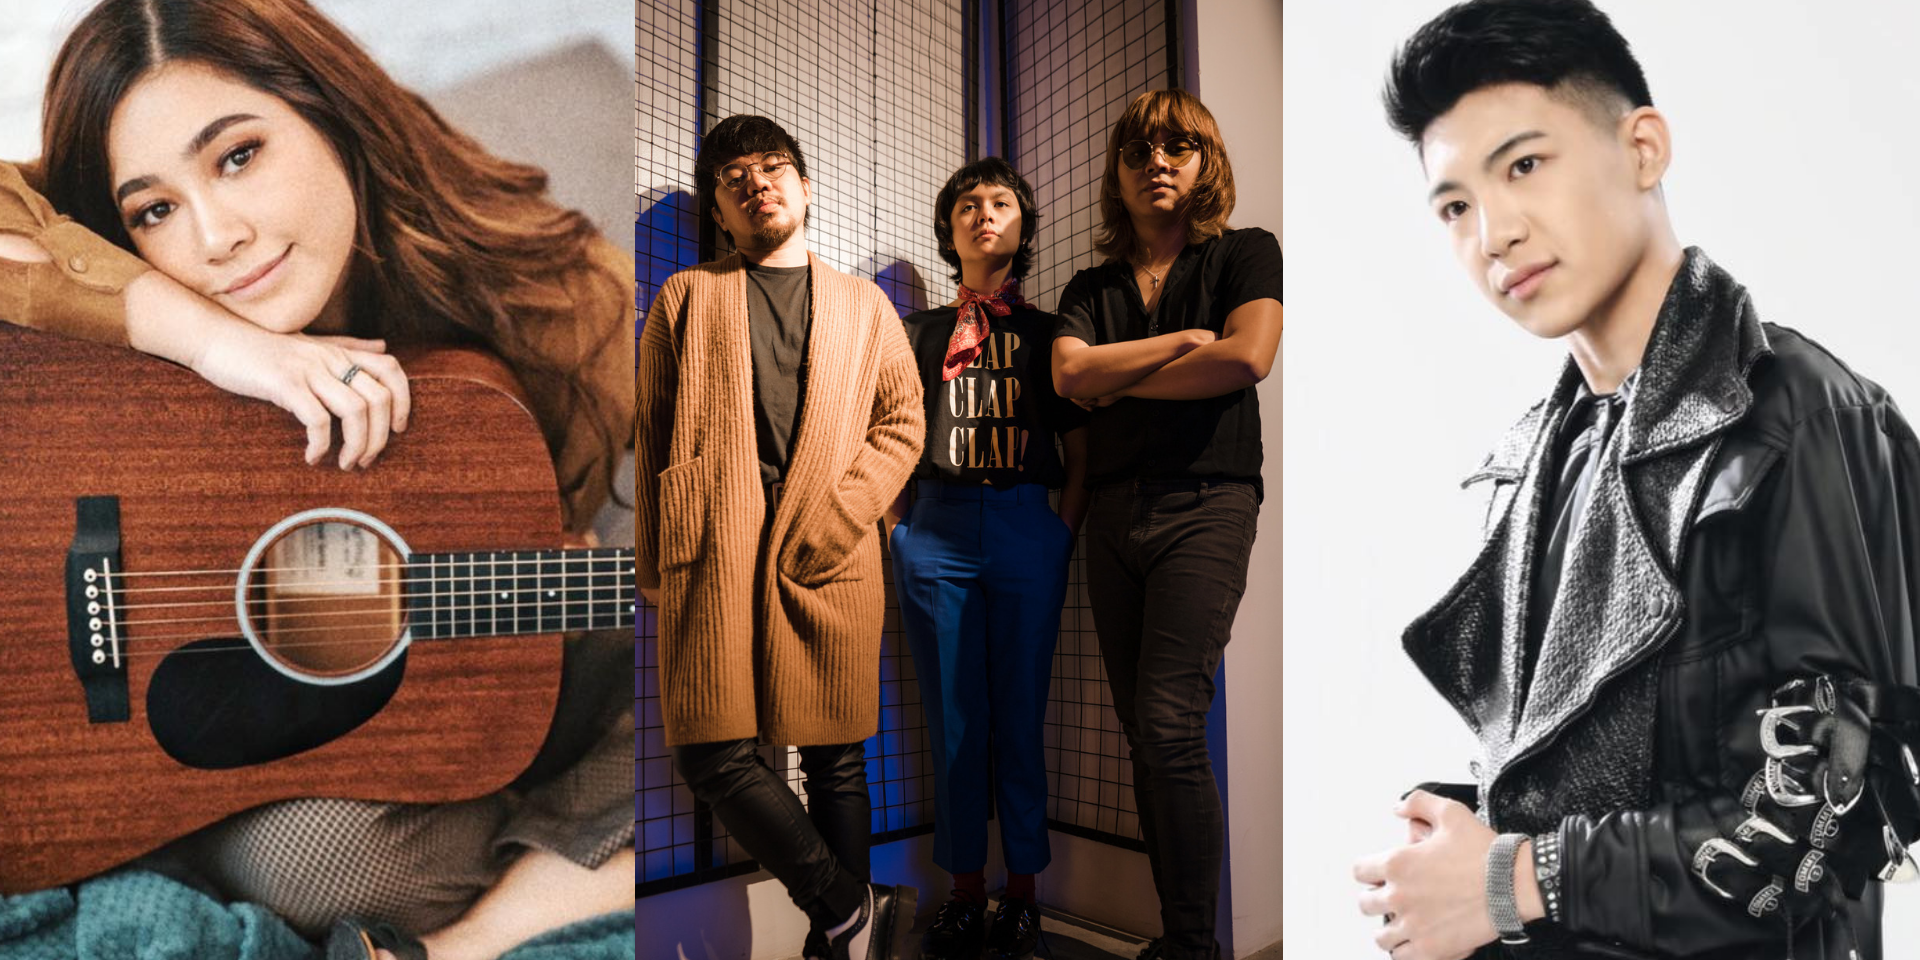 IV of Spades, Moira Dela Torre, and Darren Espanto are the most talked about Filipino musicians on Twitter